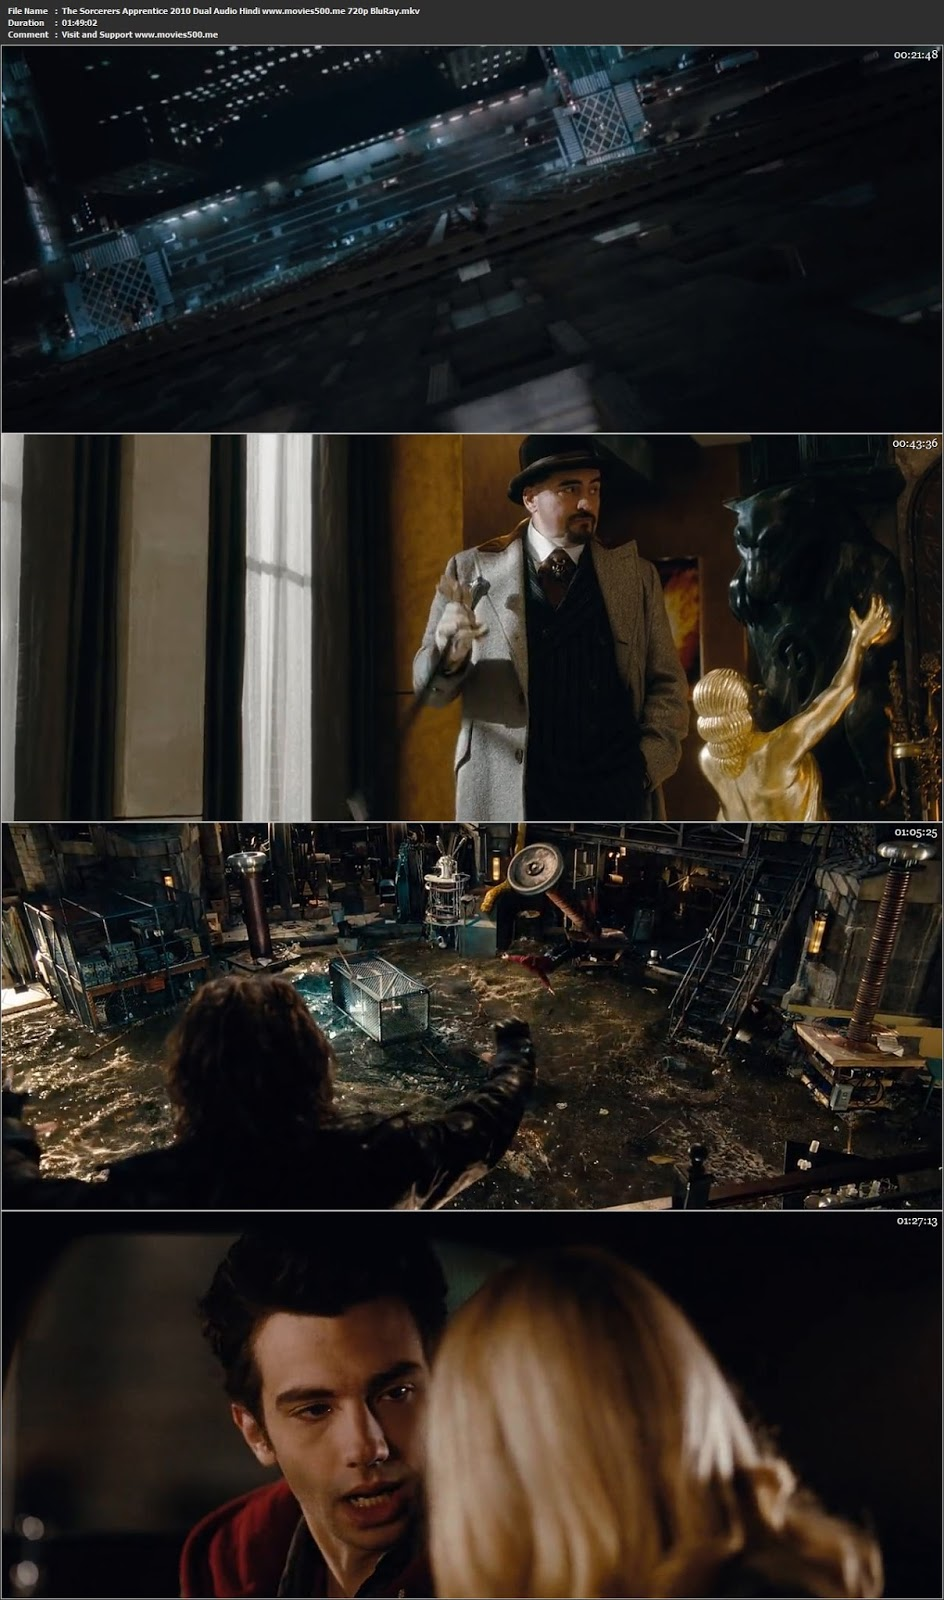 The Sorcerers Apprentice 2010 Dual Audio Hindi ENG BluRay 720p at movies500.site